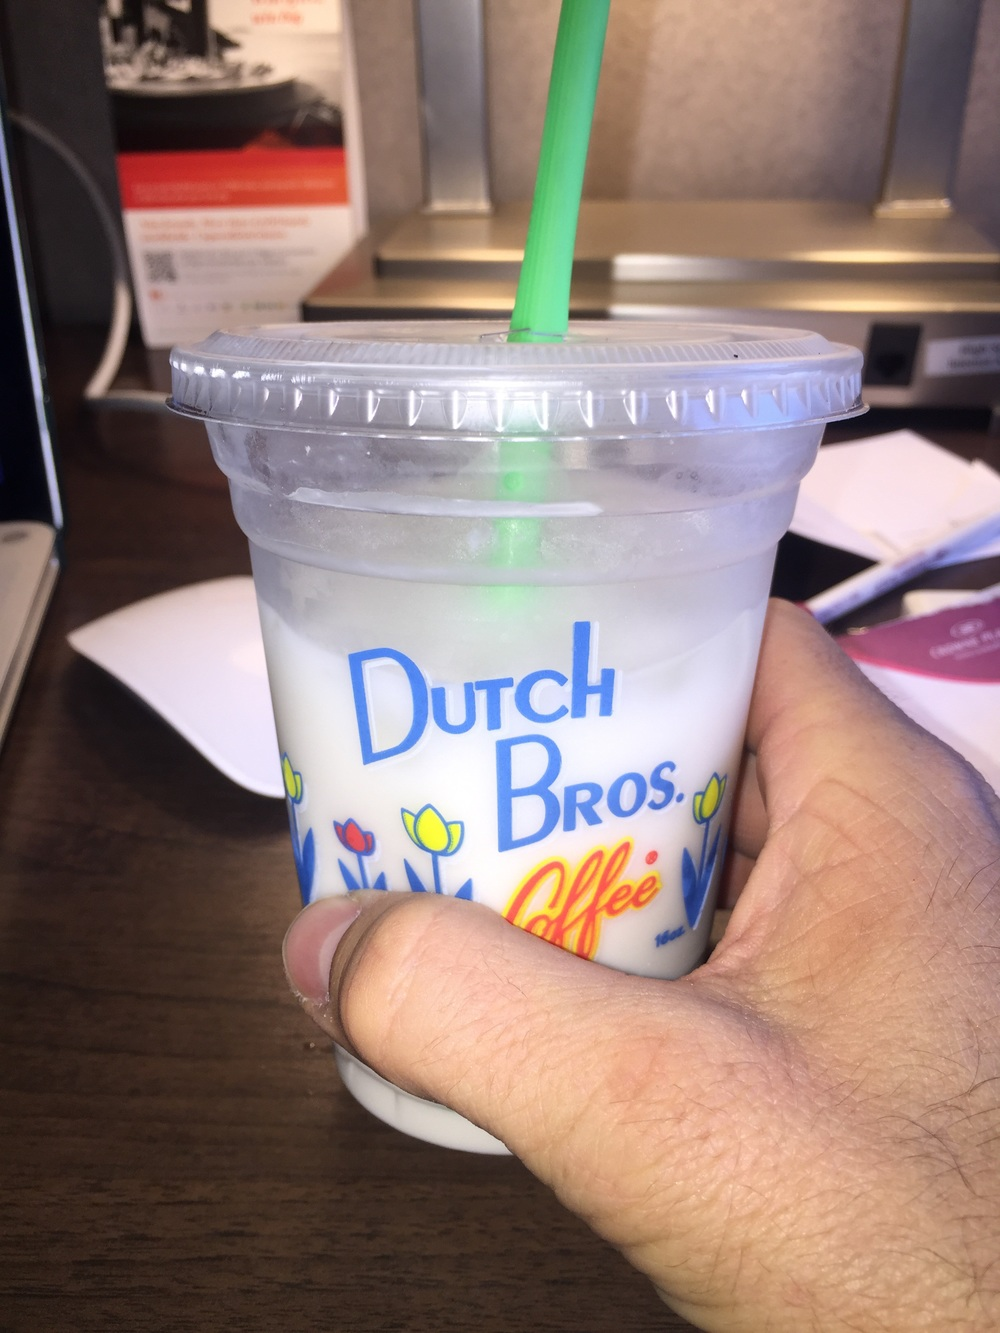 First time having Dutch bros white coffee